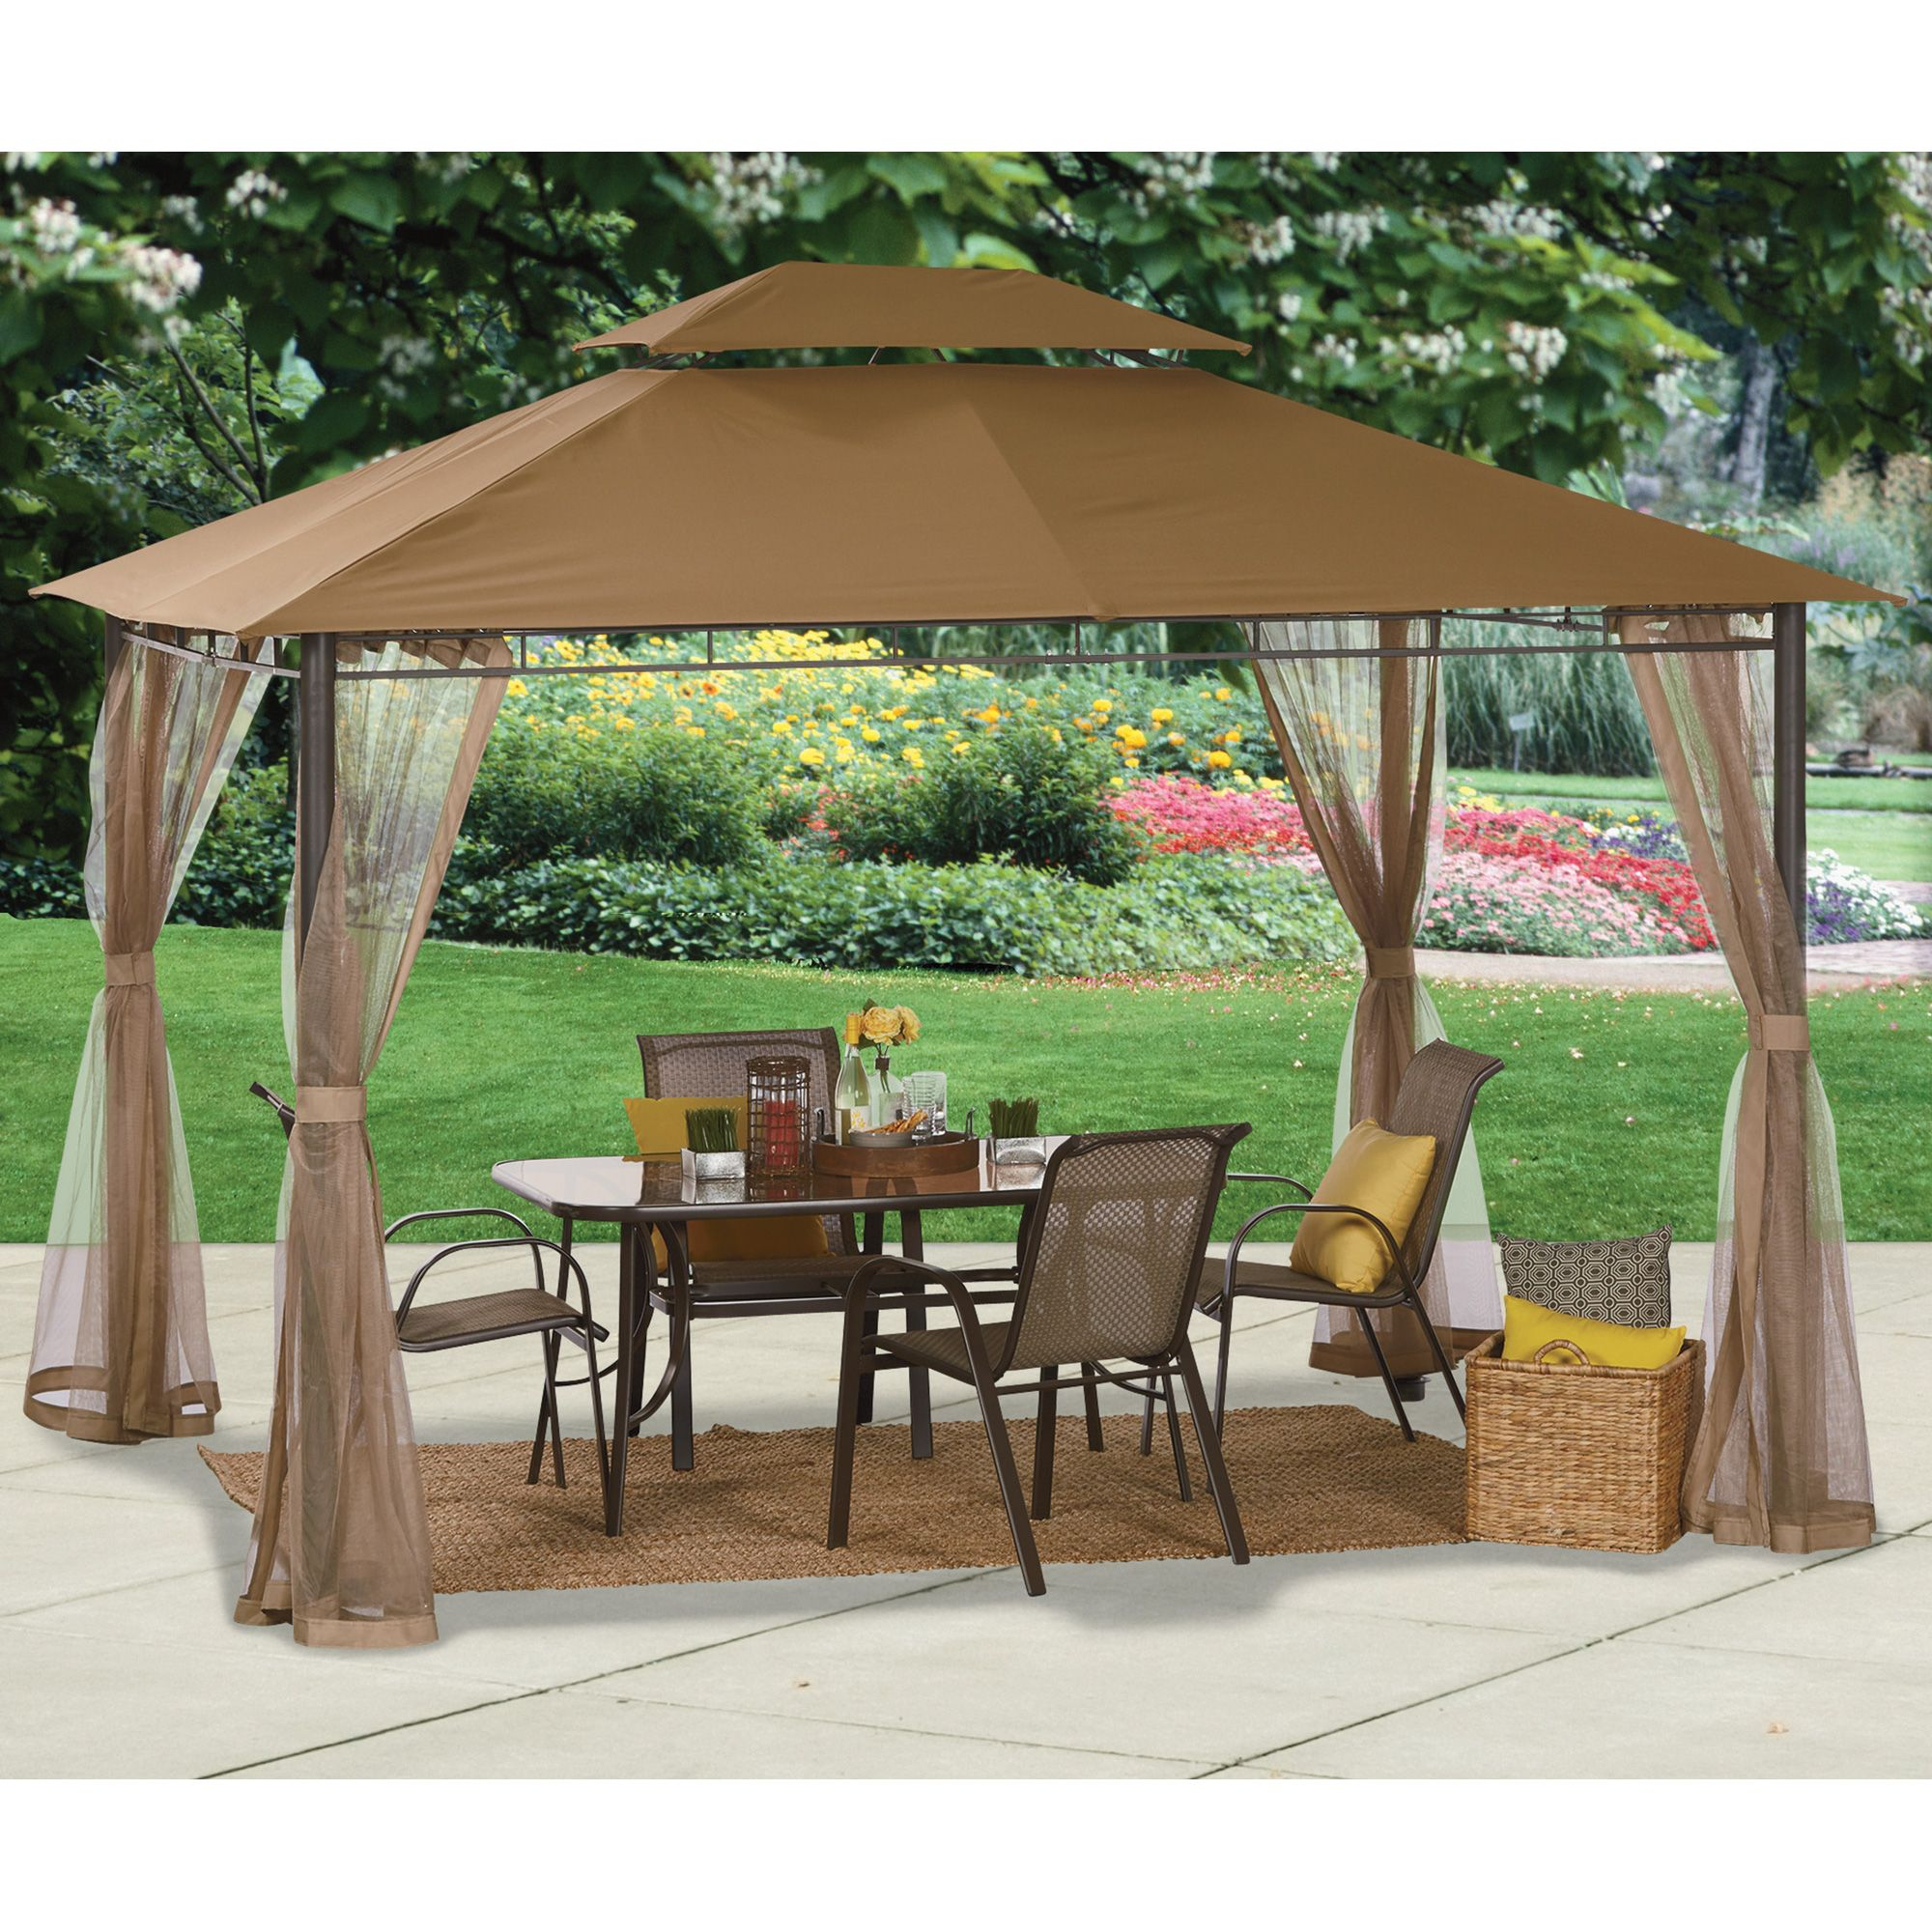 10ft X 12ft Deluxe Patio Gazebo Outdoor Party Protection Www Kotulas Com Free Shipping Patio Tents Patio Patio Gazebo